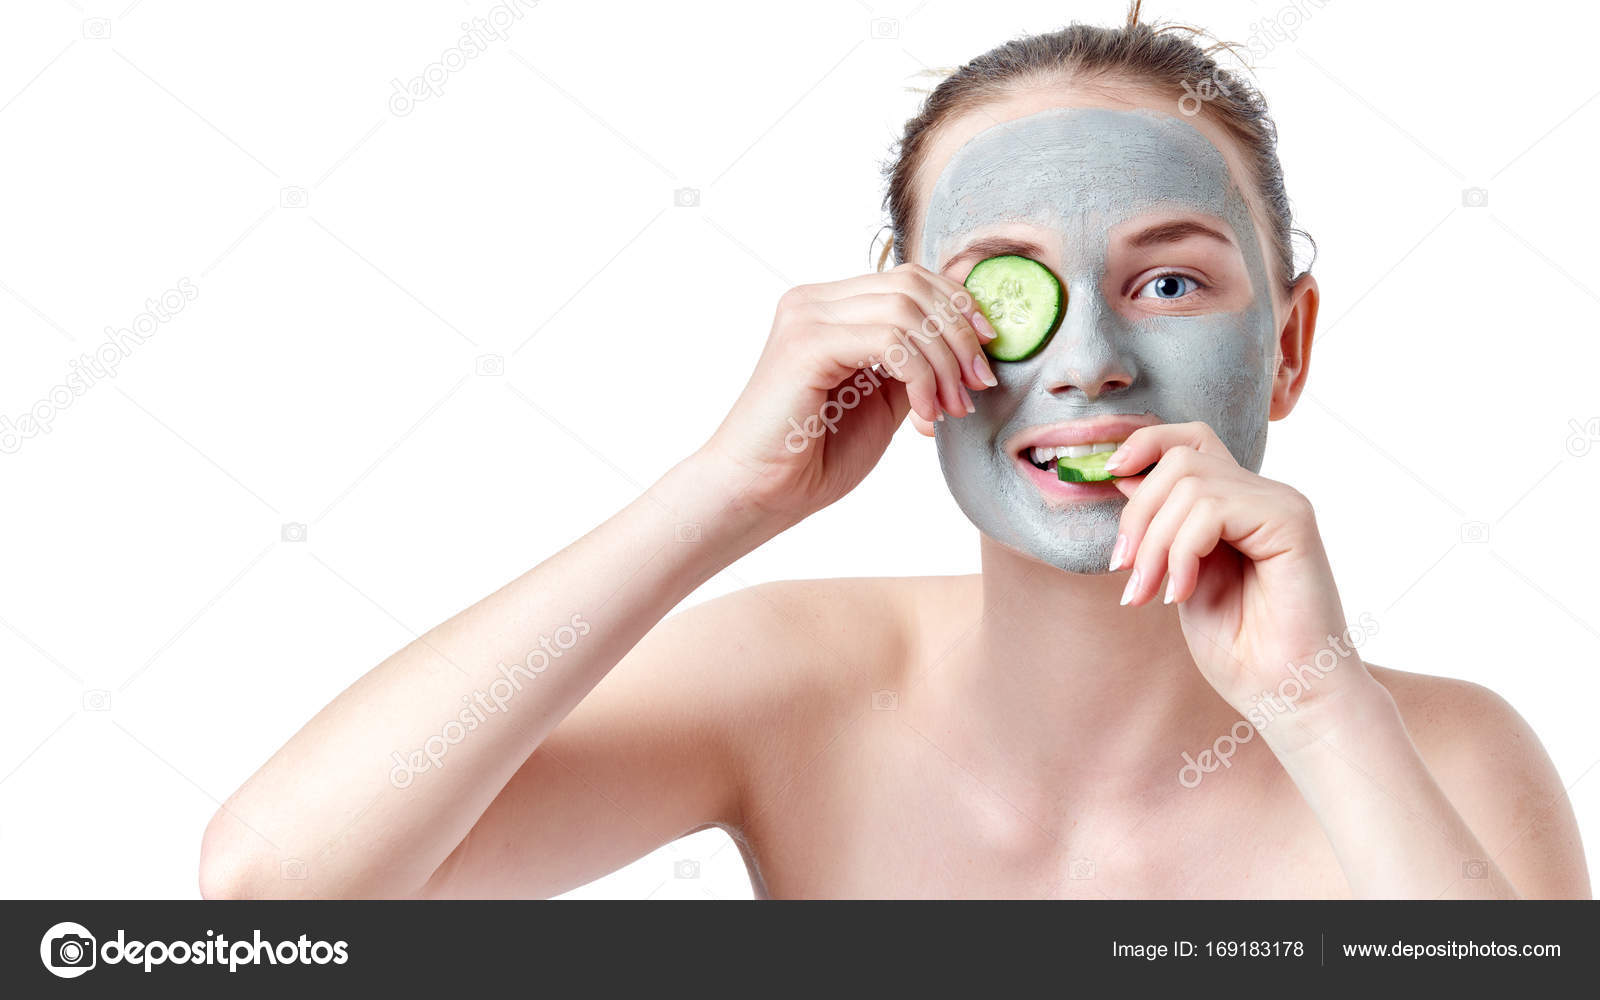 nackt-teenpost-recipes-for-cleansing-facial-masks-made-out-of-cucumber-shemales